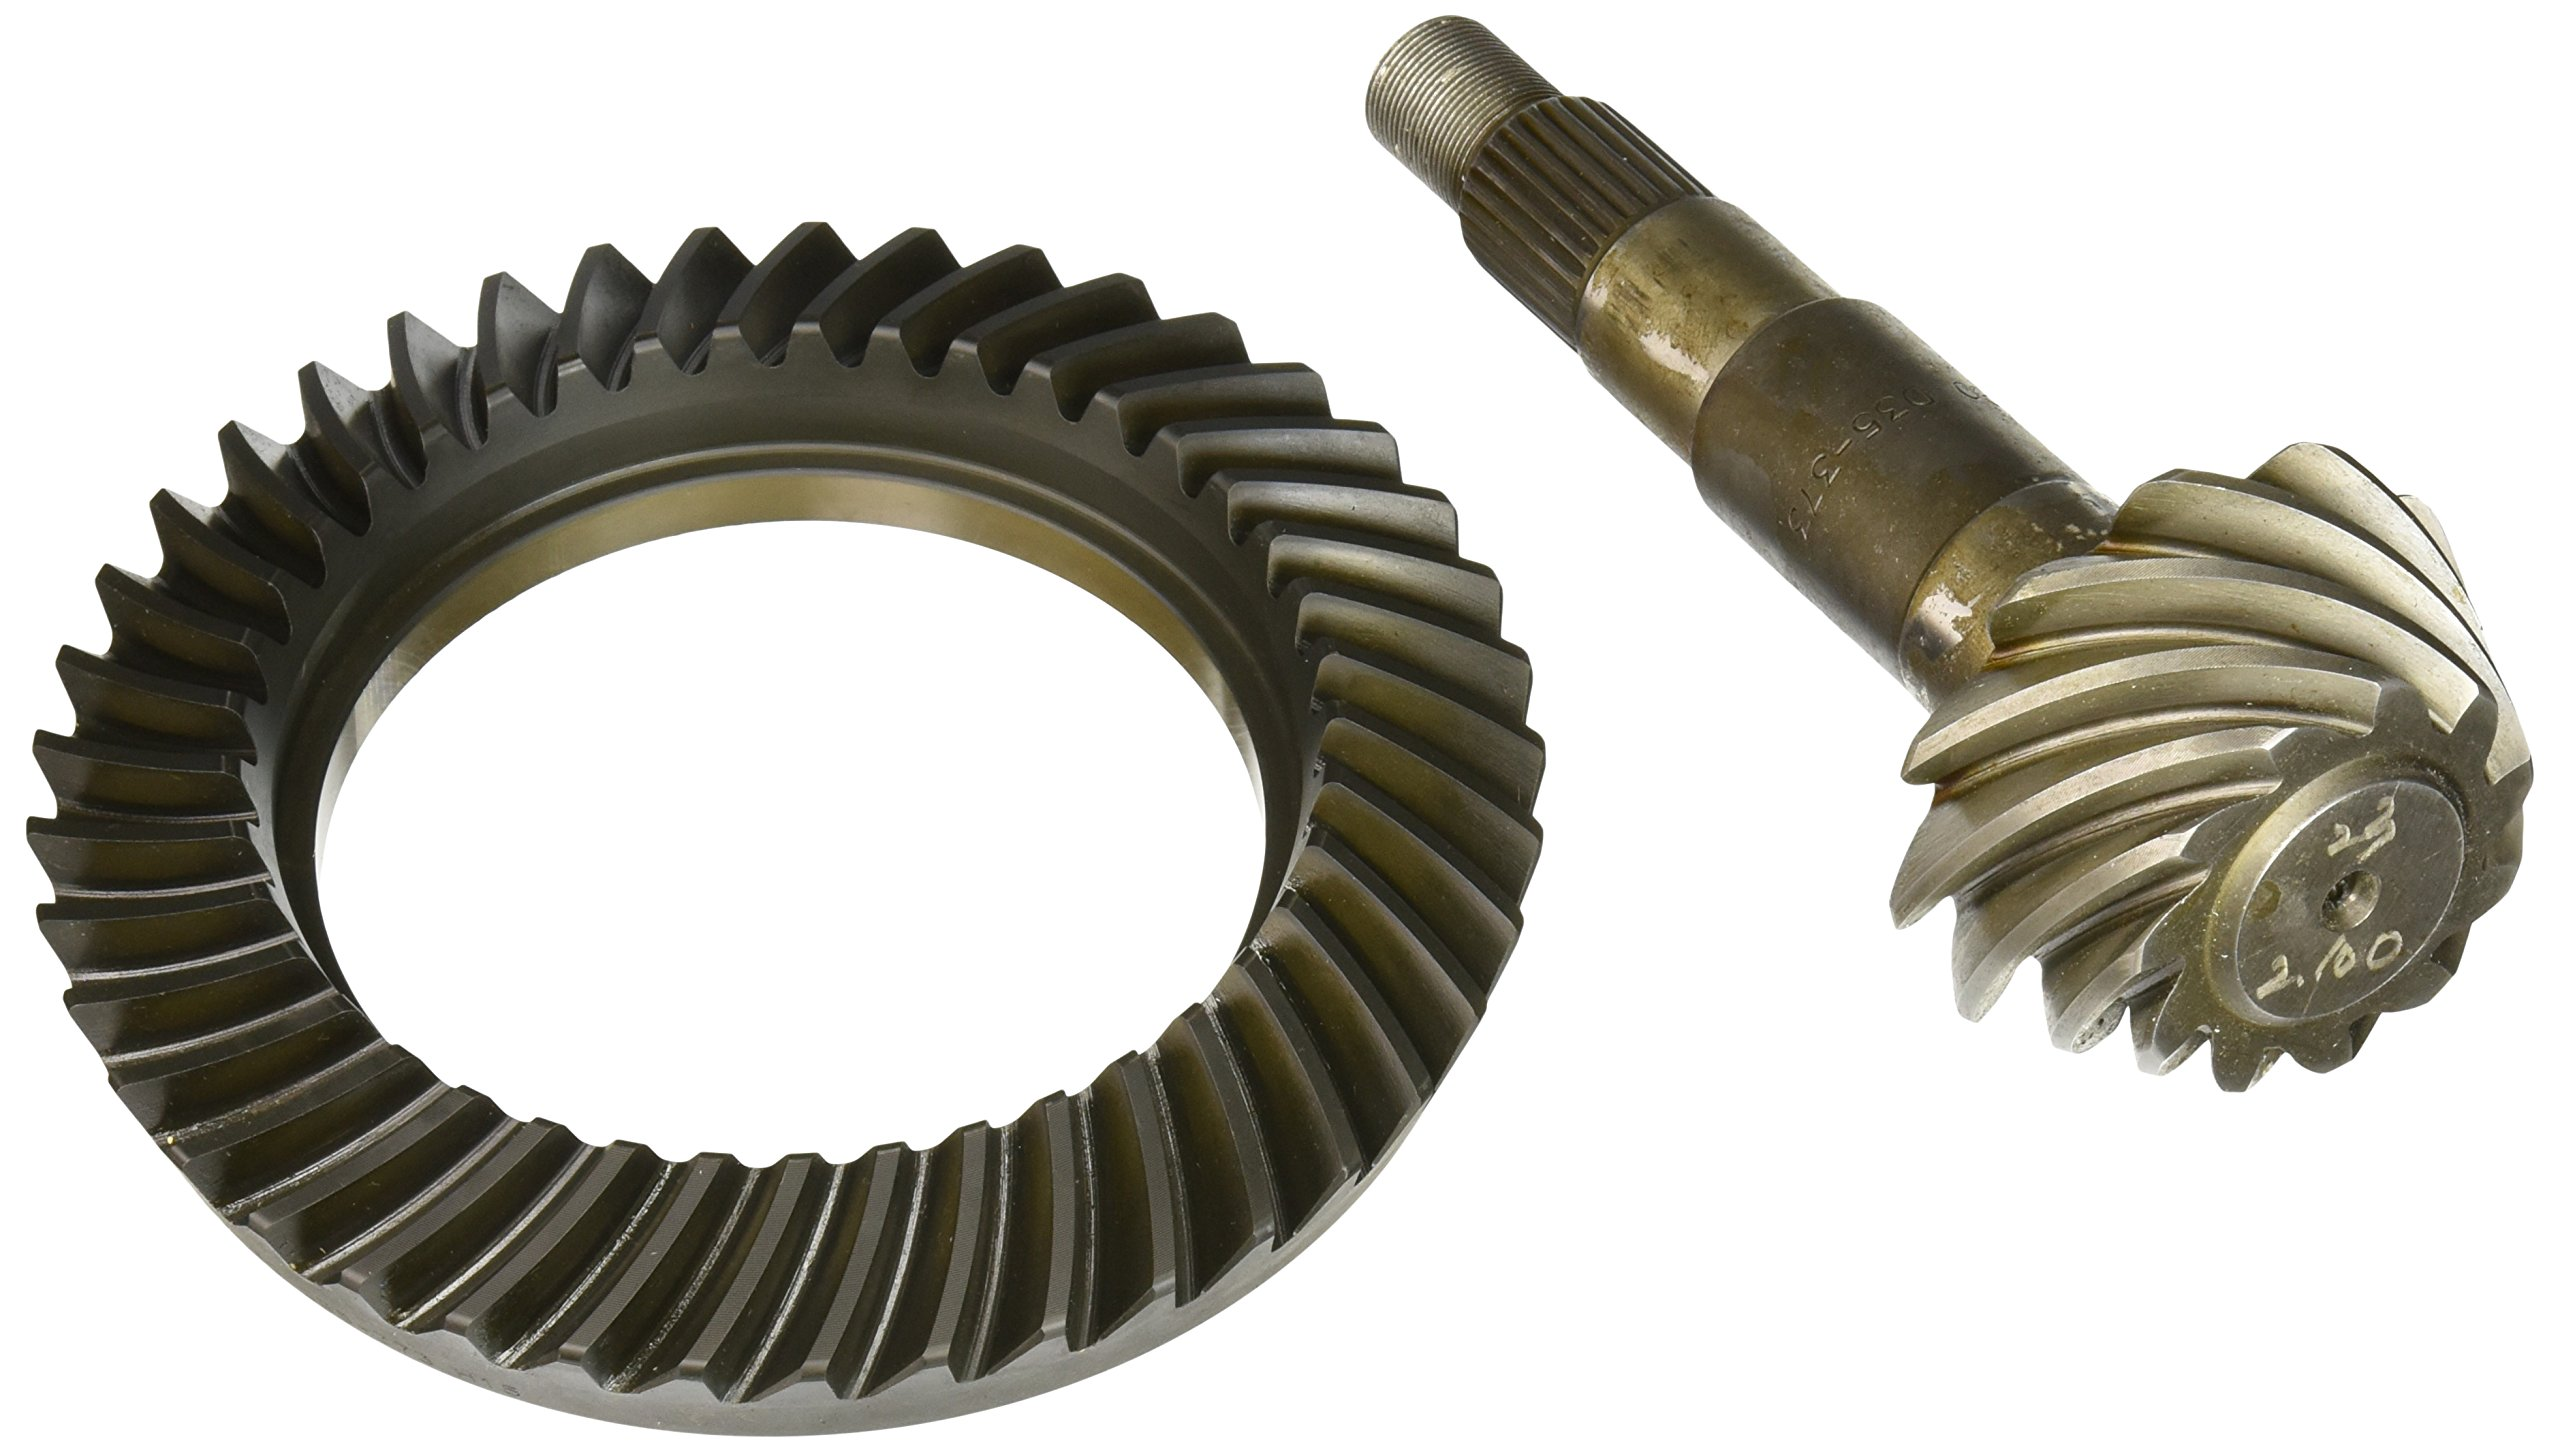 Motive Gear (D35-373) Performance Ring and Pinion Differential Set, Dana 35 Standard, 41-11 Teeth, 3.73 Ratio